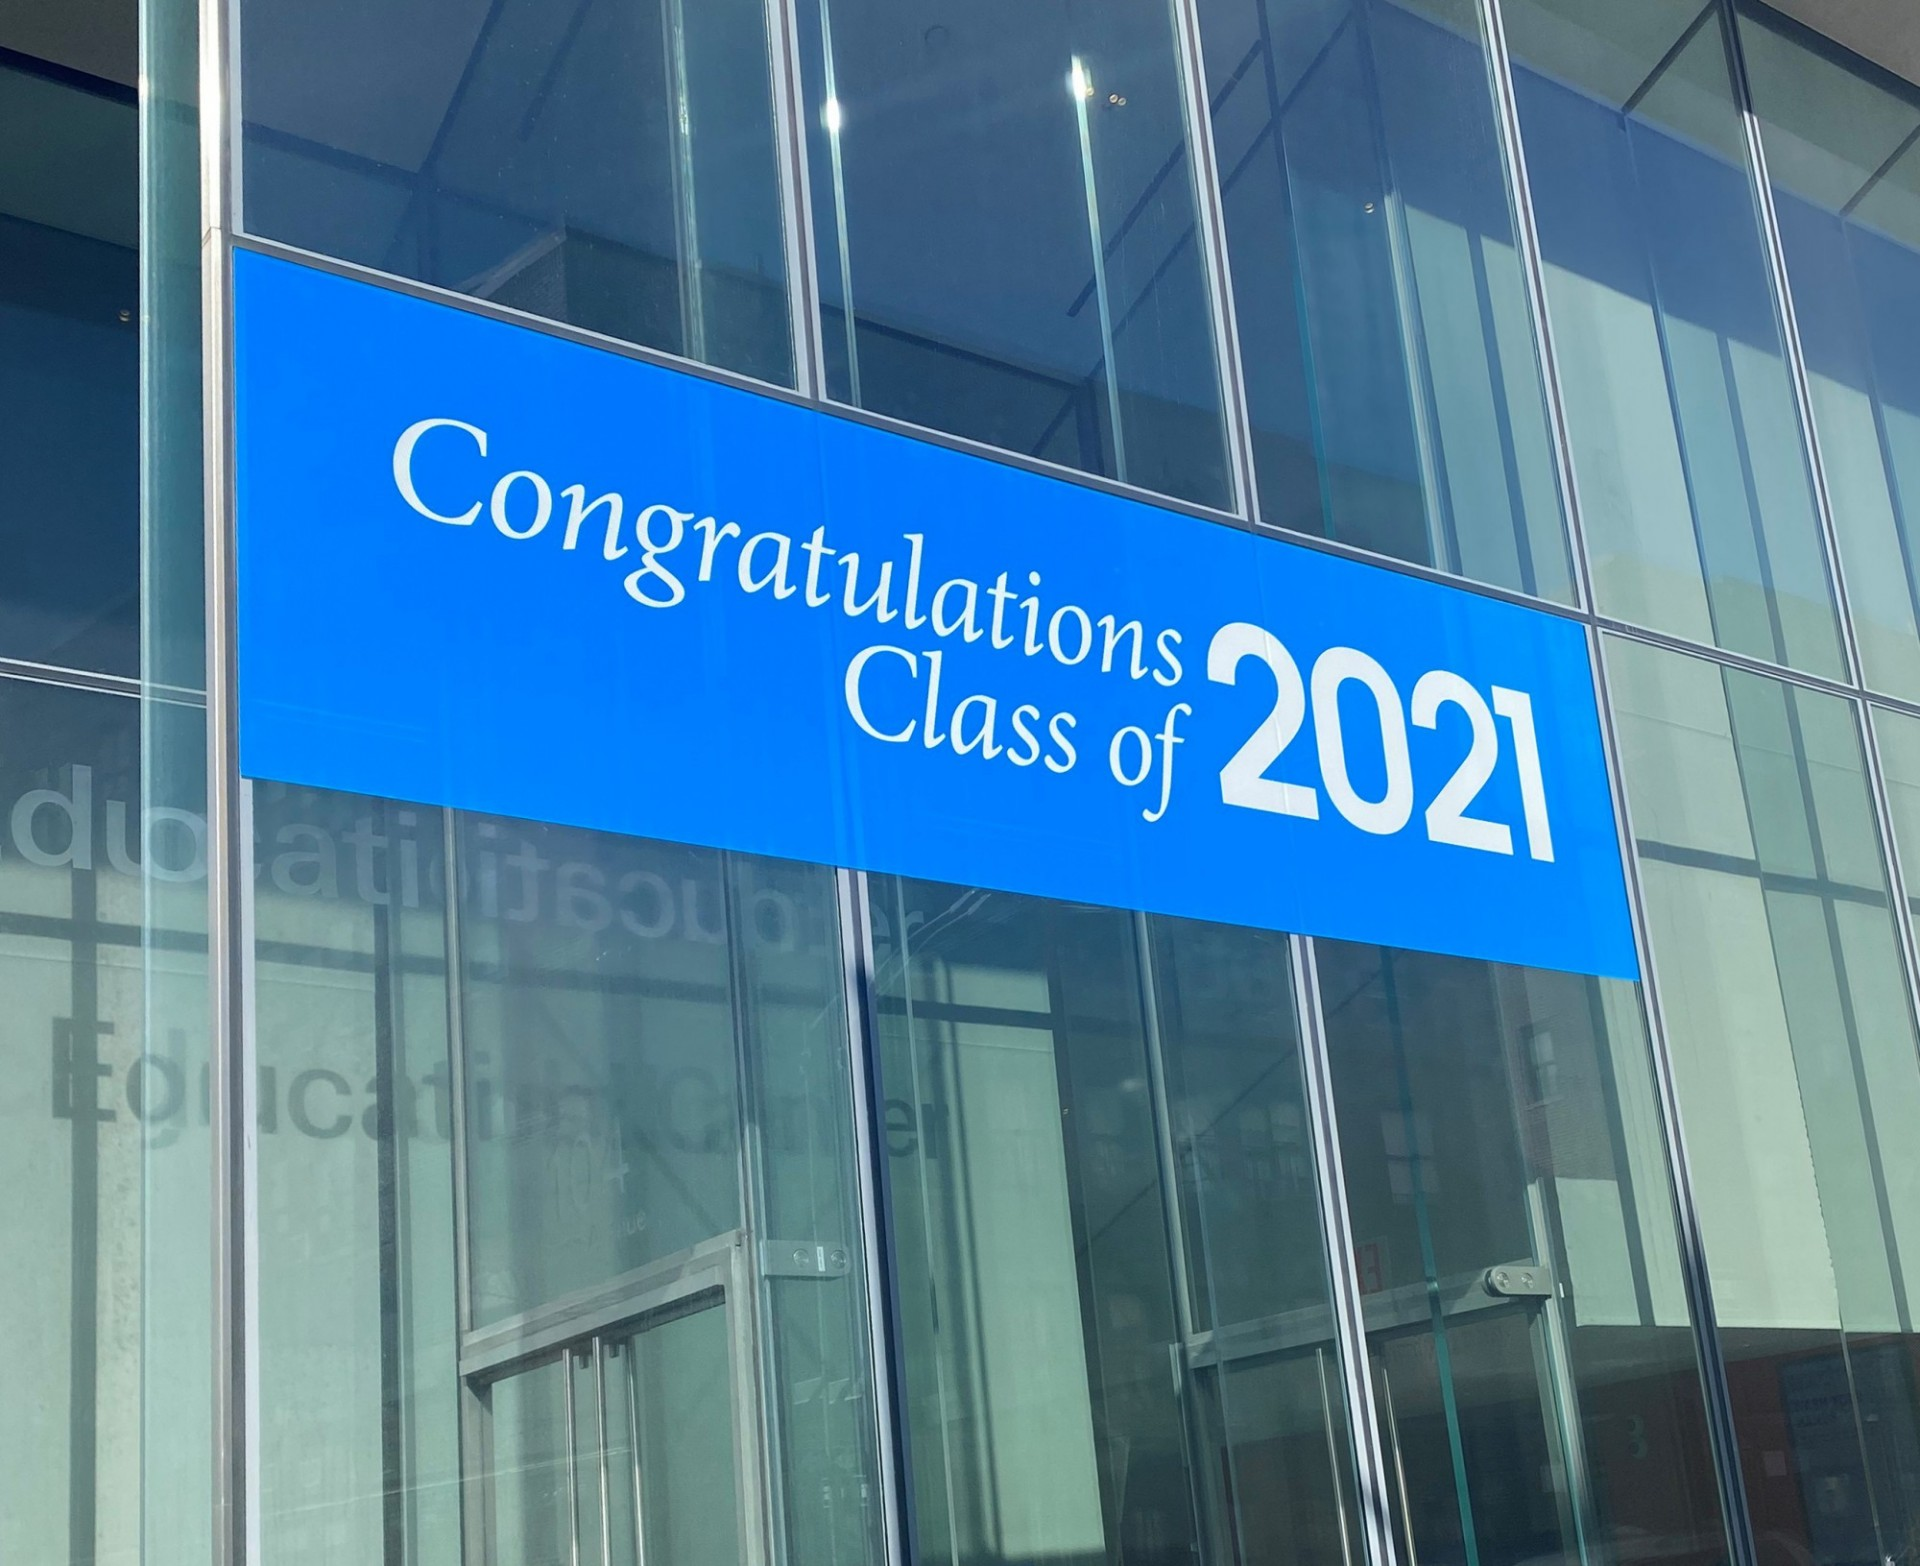 """Congratulations Class of 2021"" graphic on a building window"